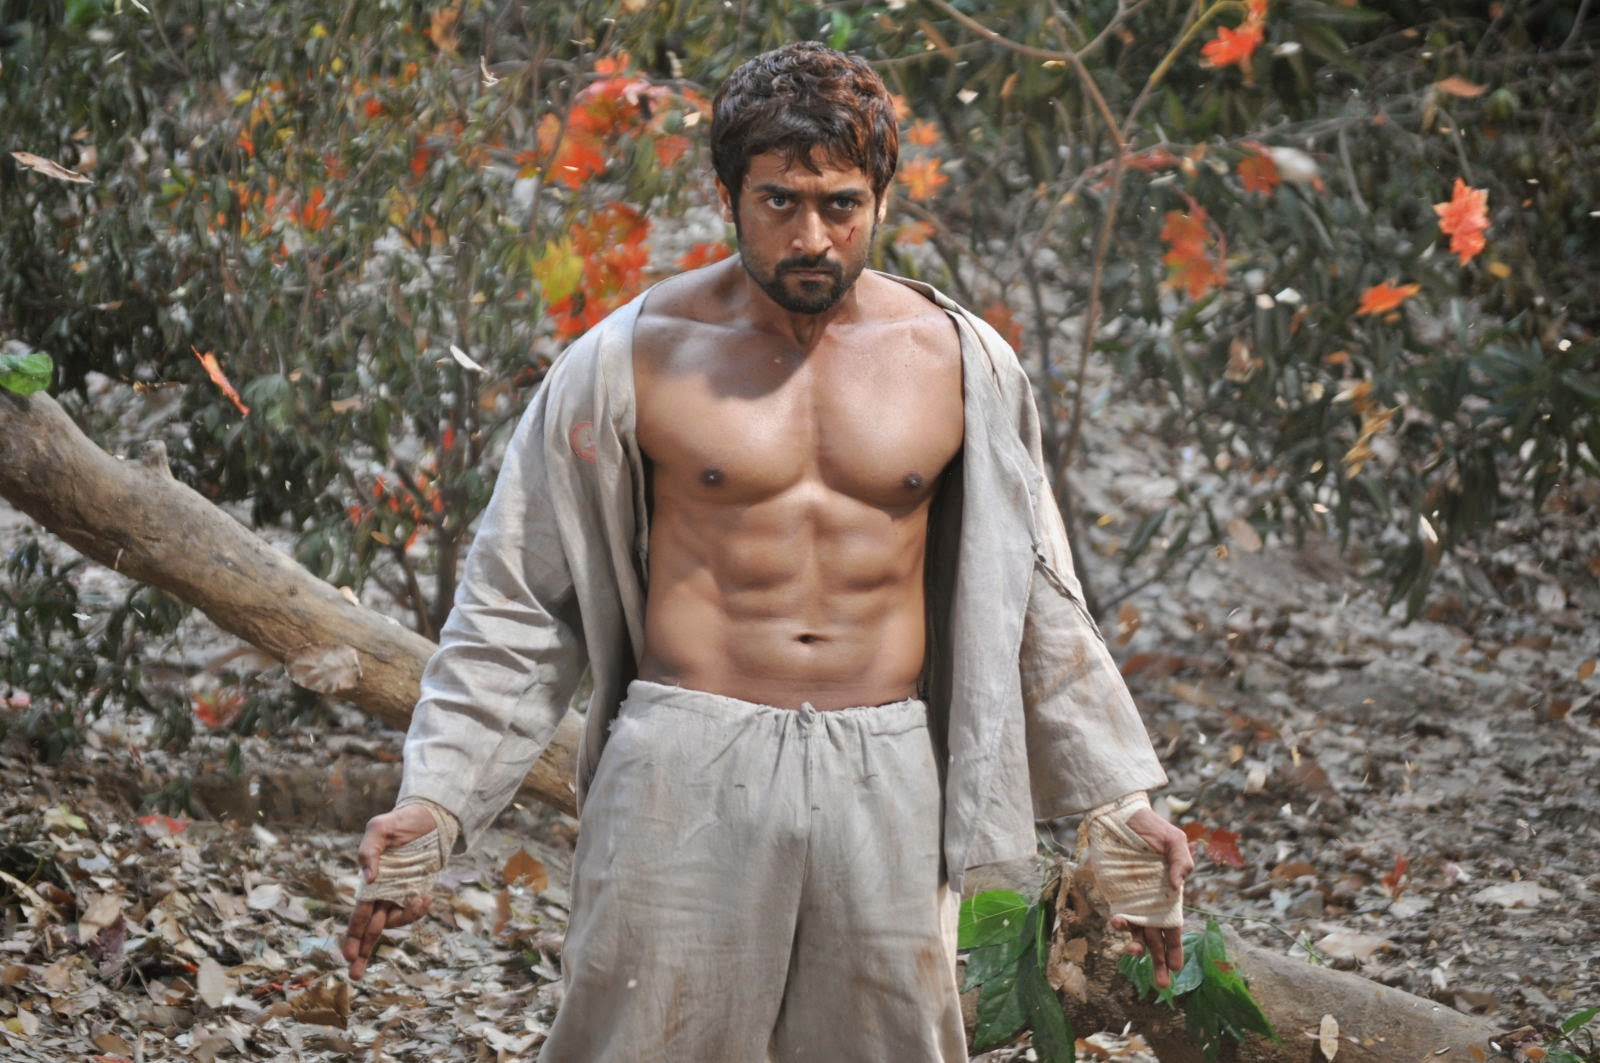 Hdhotwallpaperslovefacebookimagesbabyimagespicturesphotos surya six pack abs in his movie 7am thecheapjerseys Images